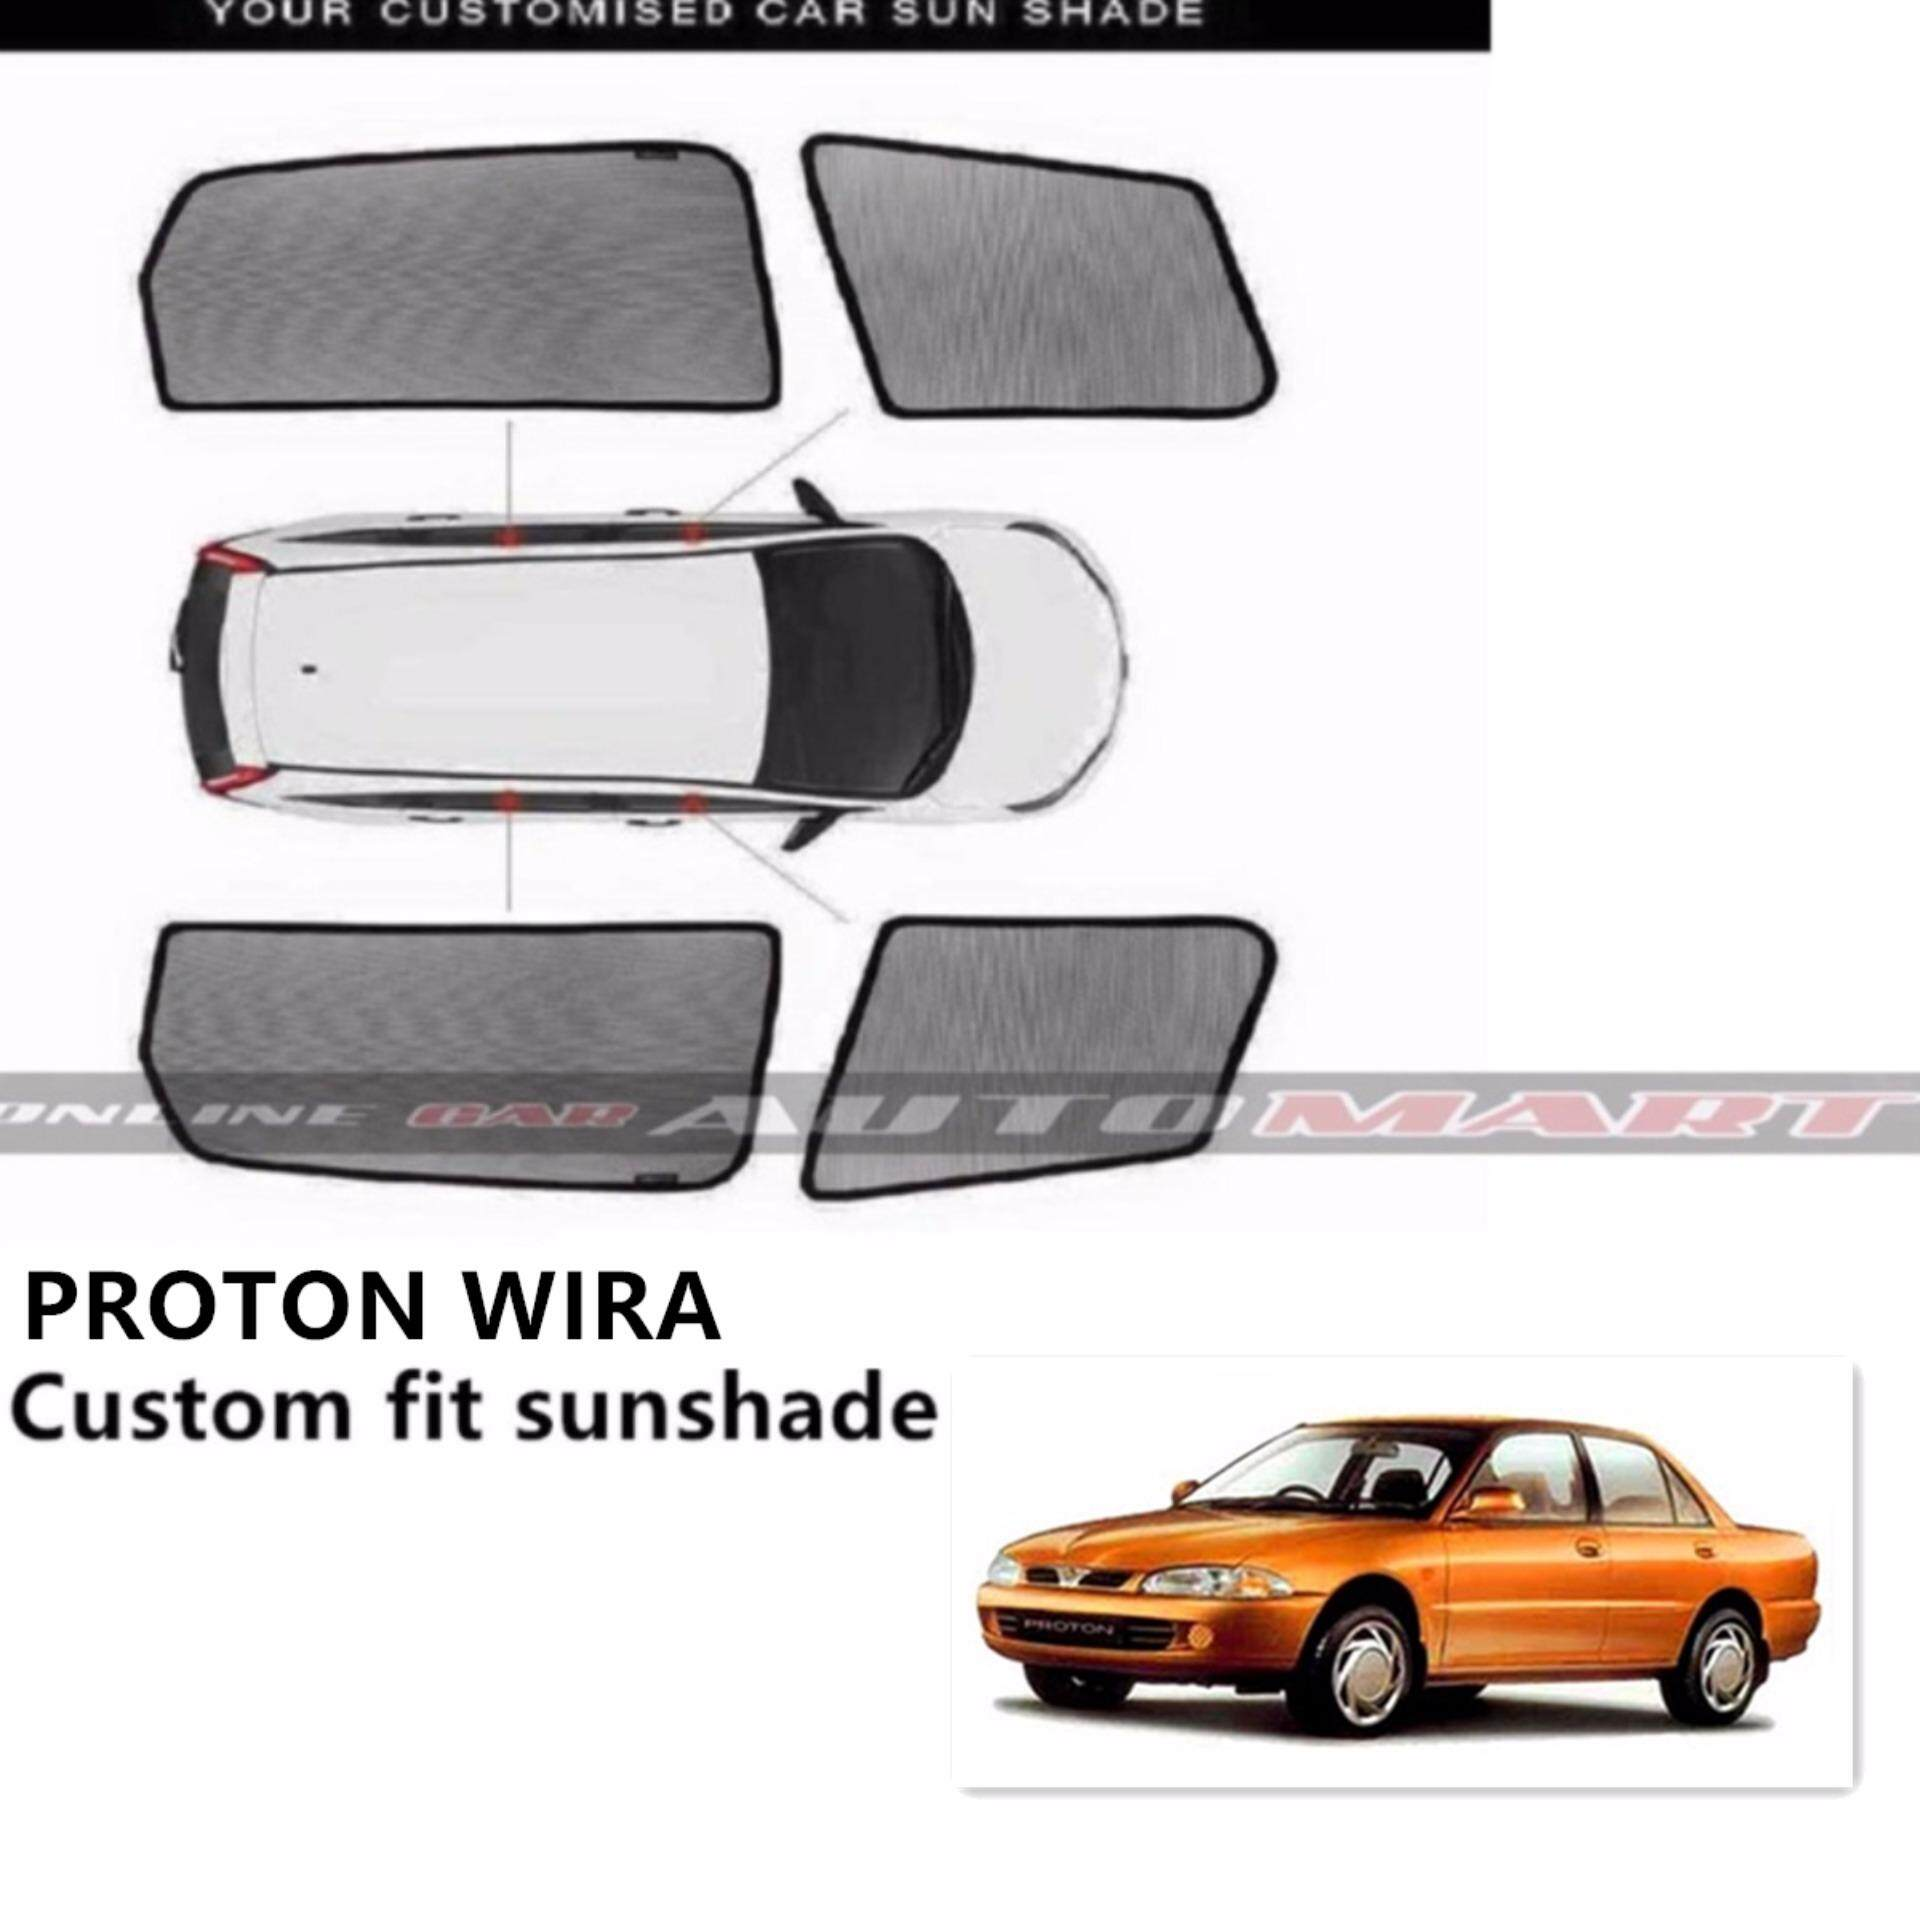 Custom Fit Sunshades/ Sun shades for Proton Wira - 4 Pcs